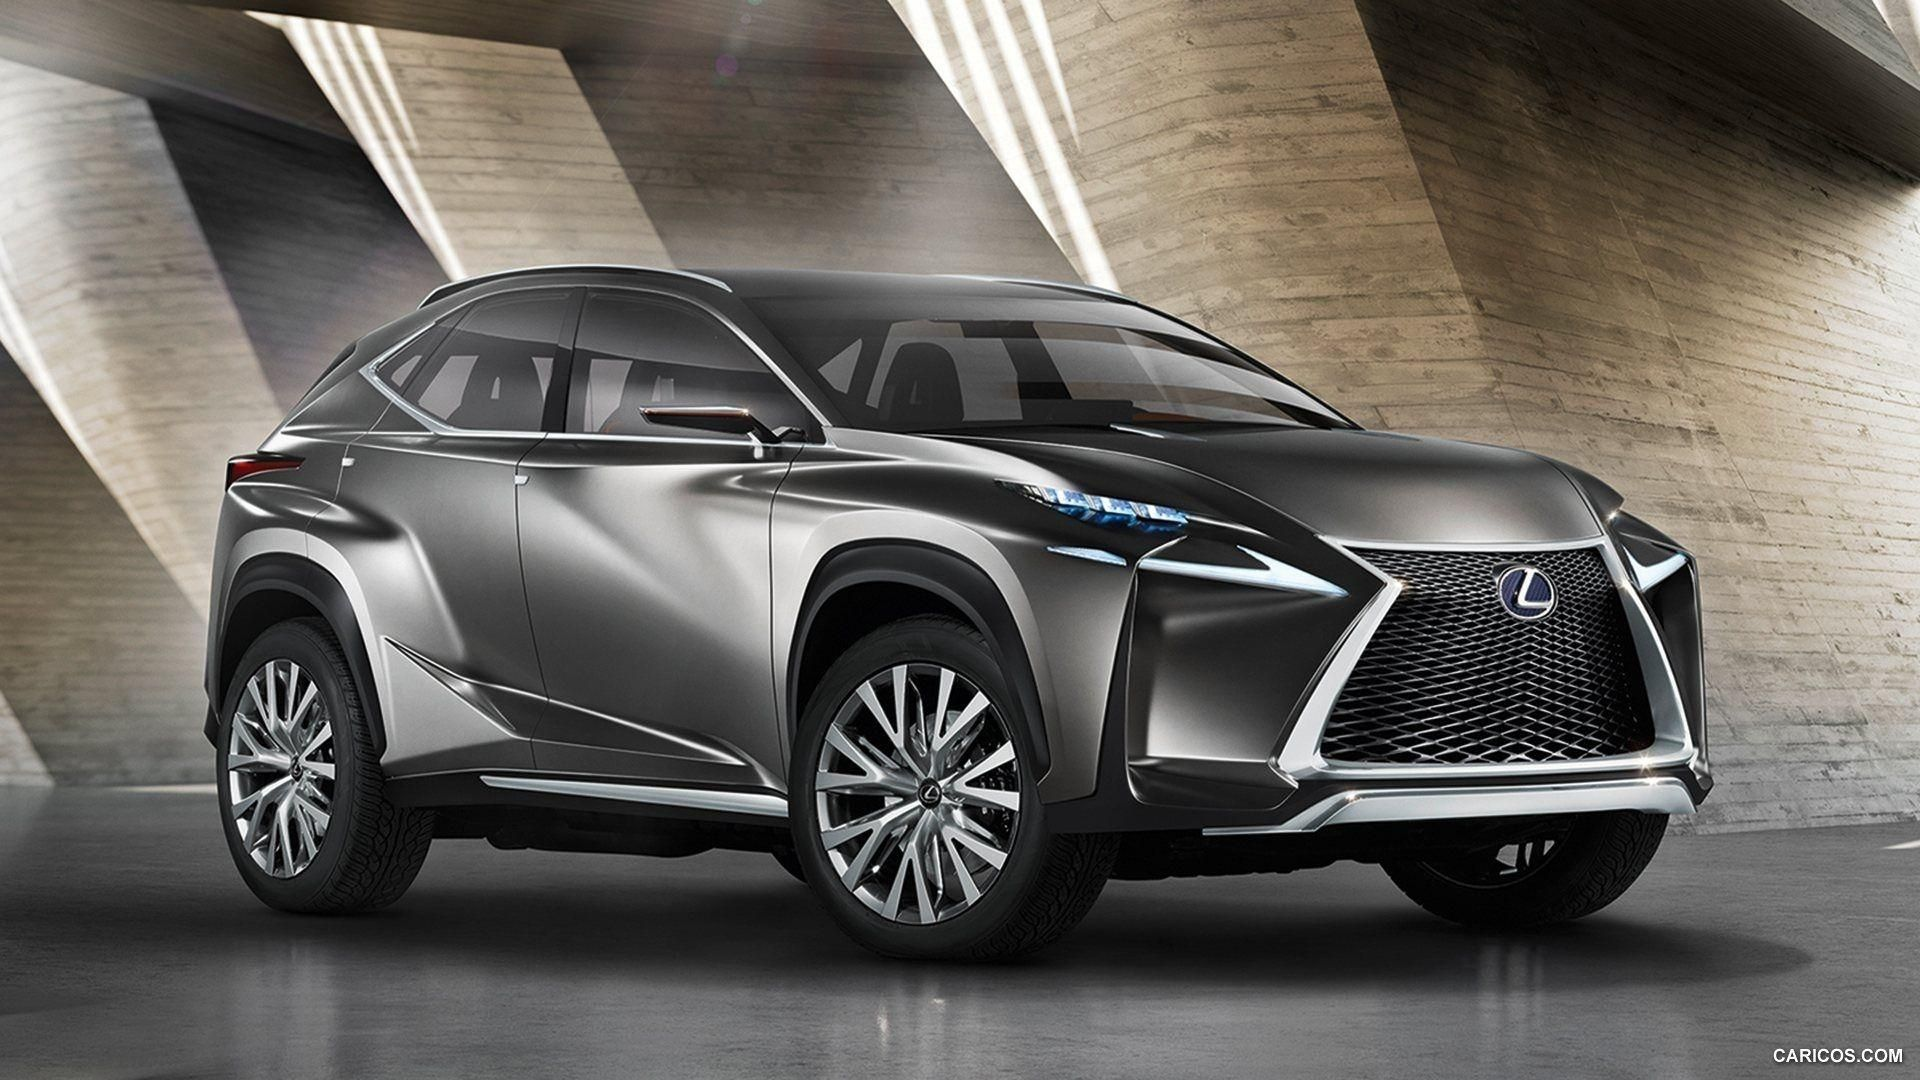 2019 Lexus Rx 350 Exterior And Interior Review My Car 2018 My